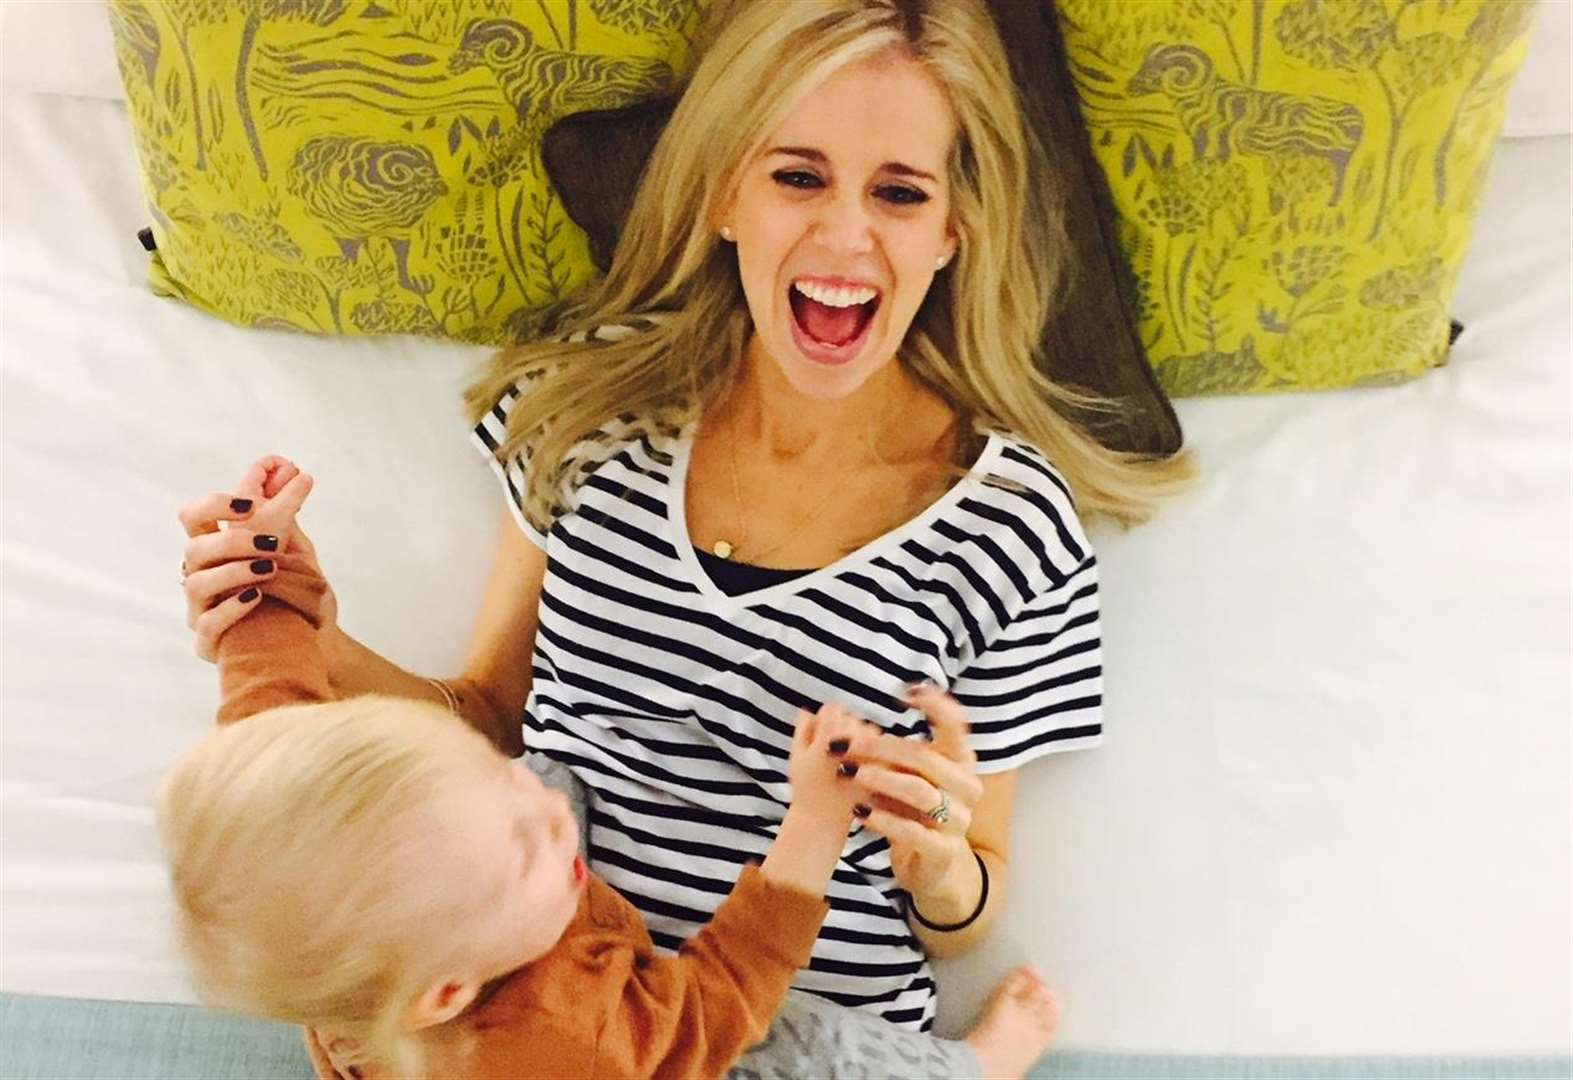 Charlie O'Brien blog: 10 things I'll miss about having a baby